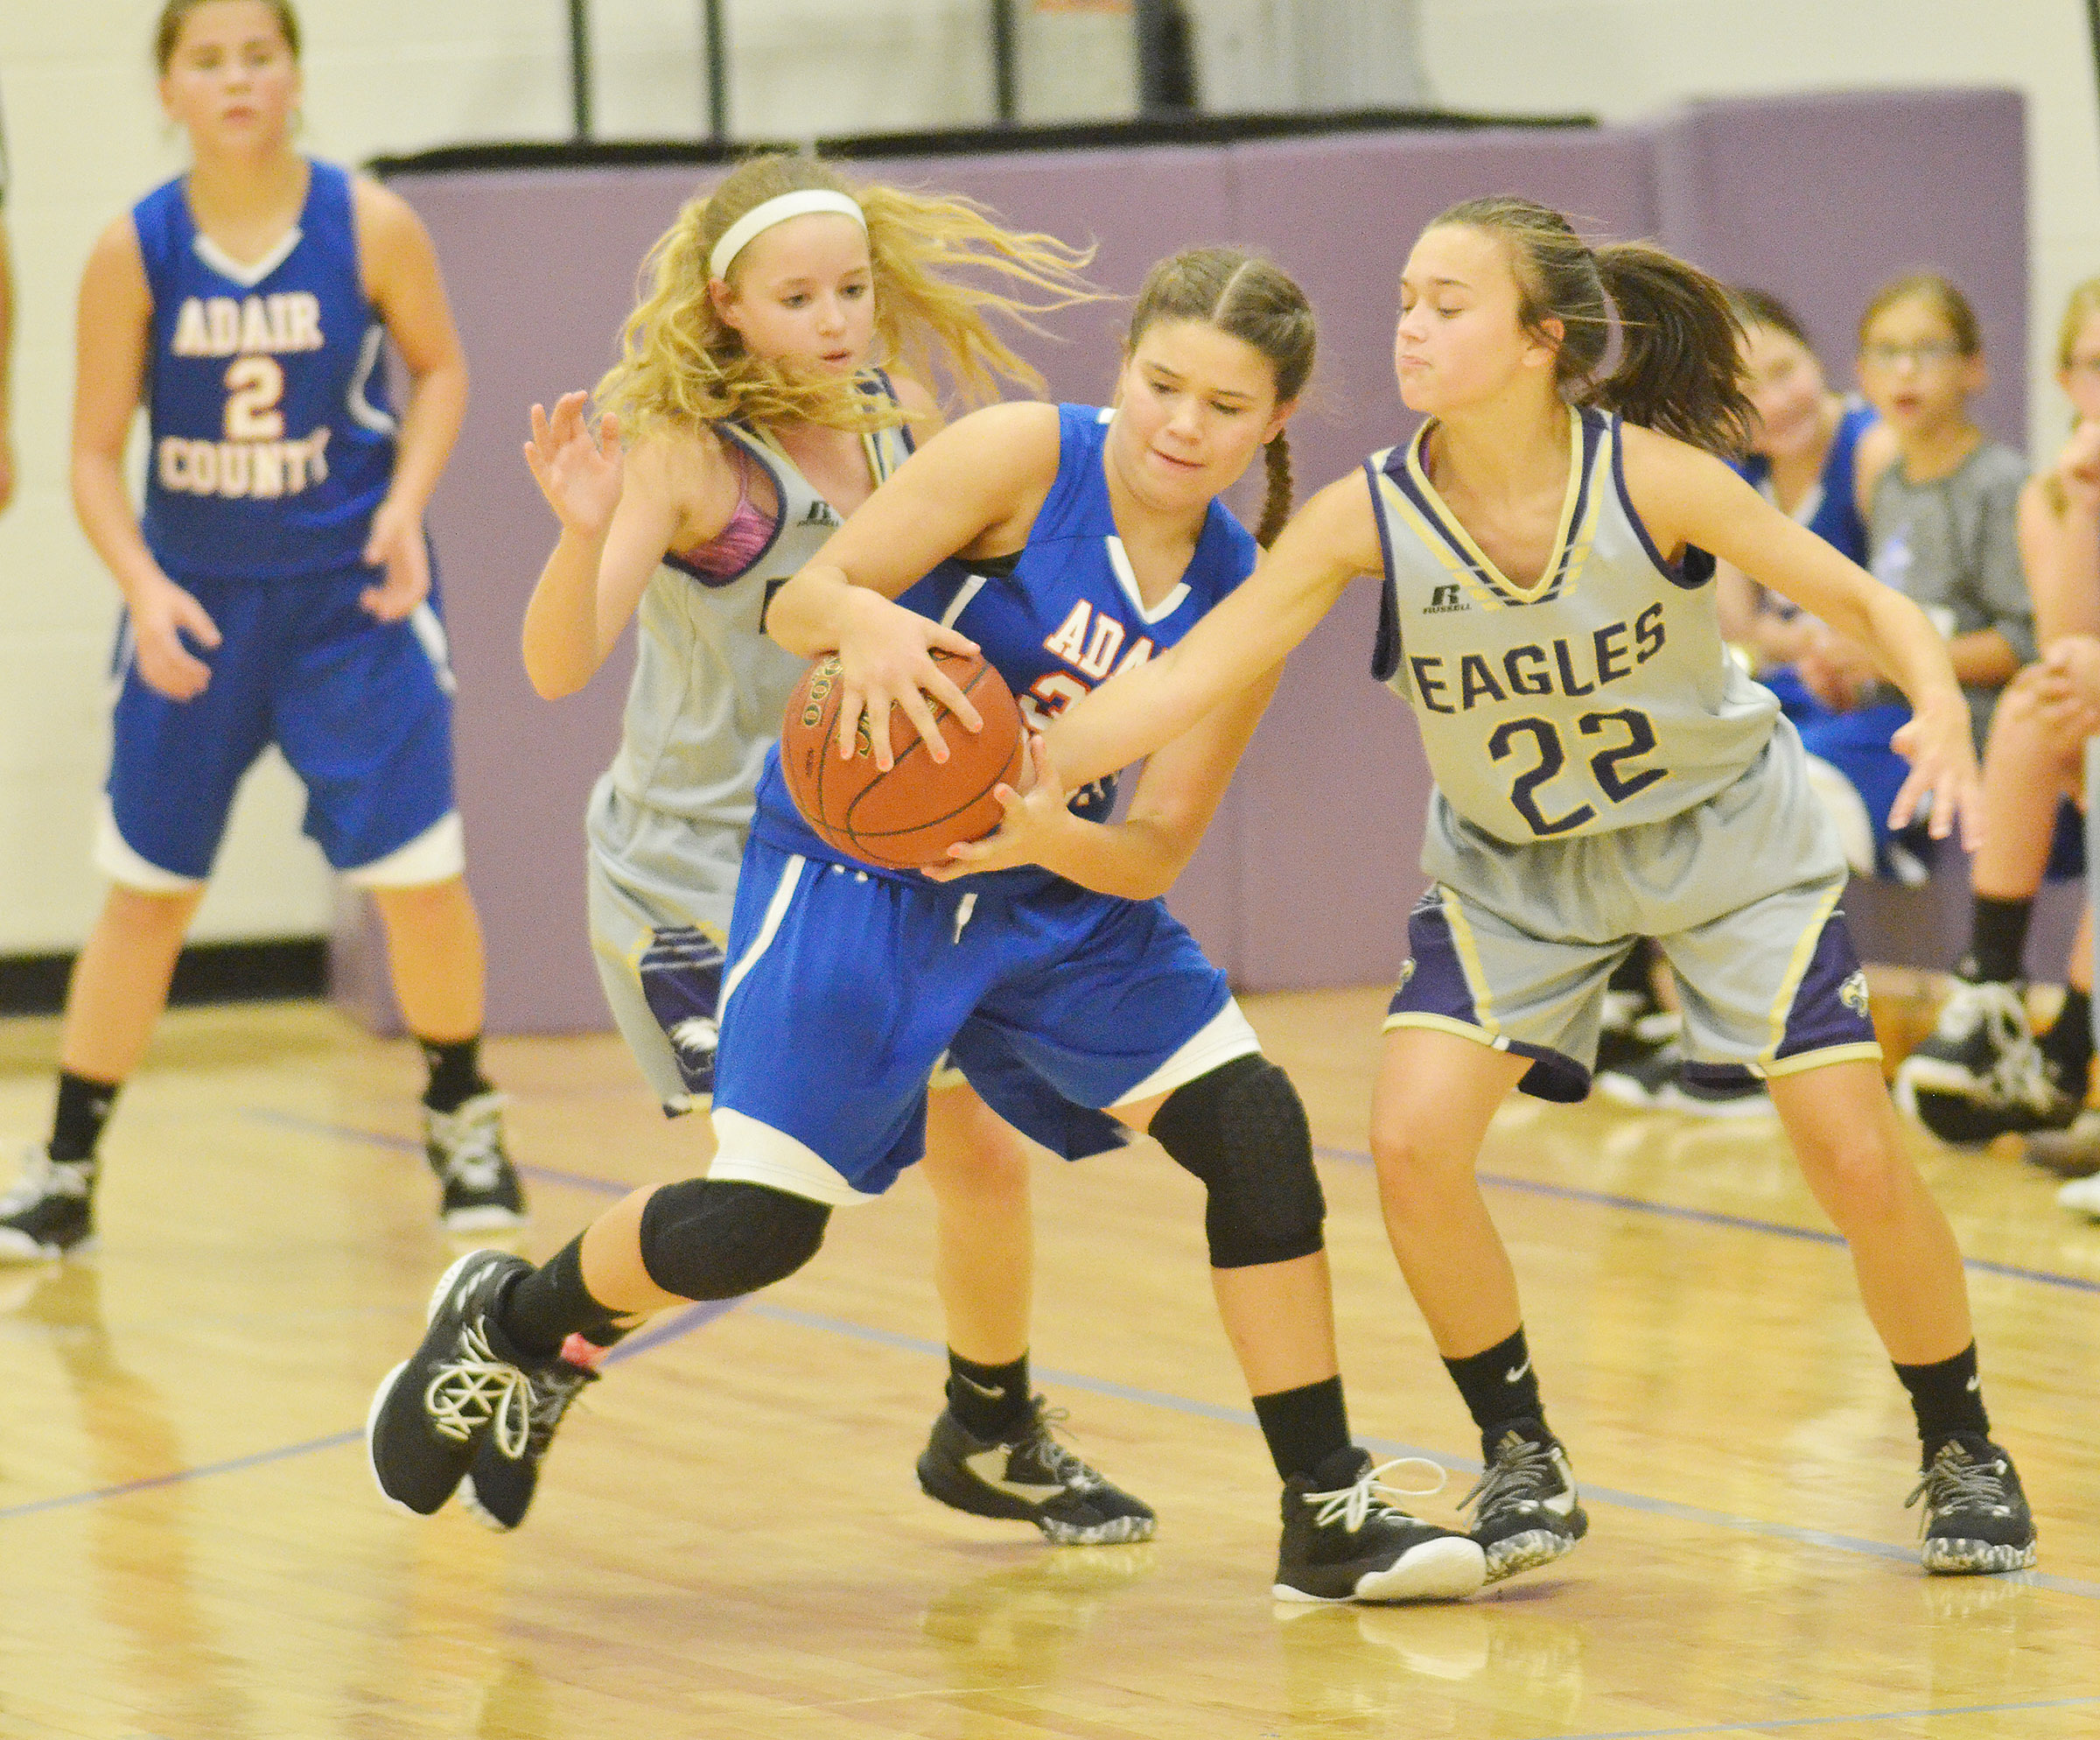 CMS eighth-graders Rylee Petett, at left, and Tayler Thompson play defense.